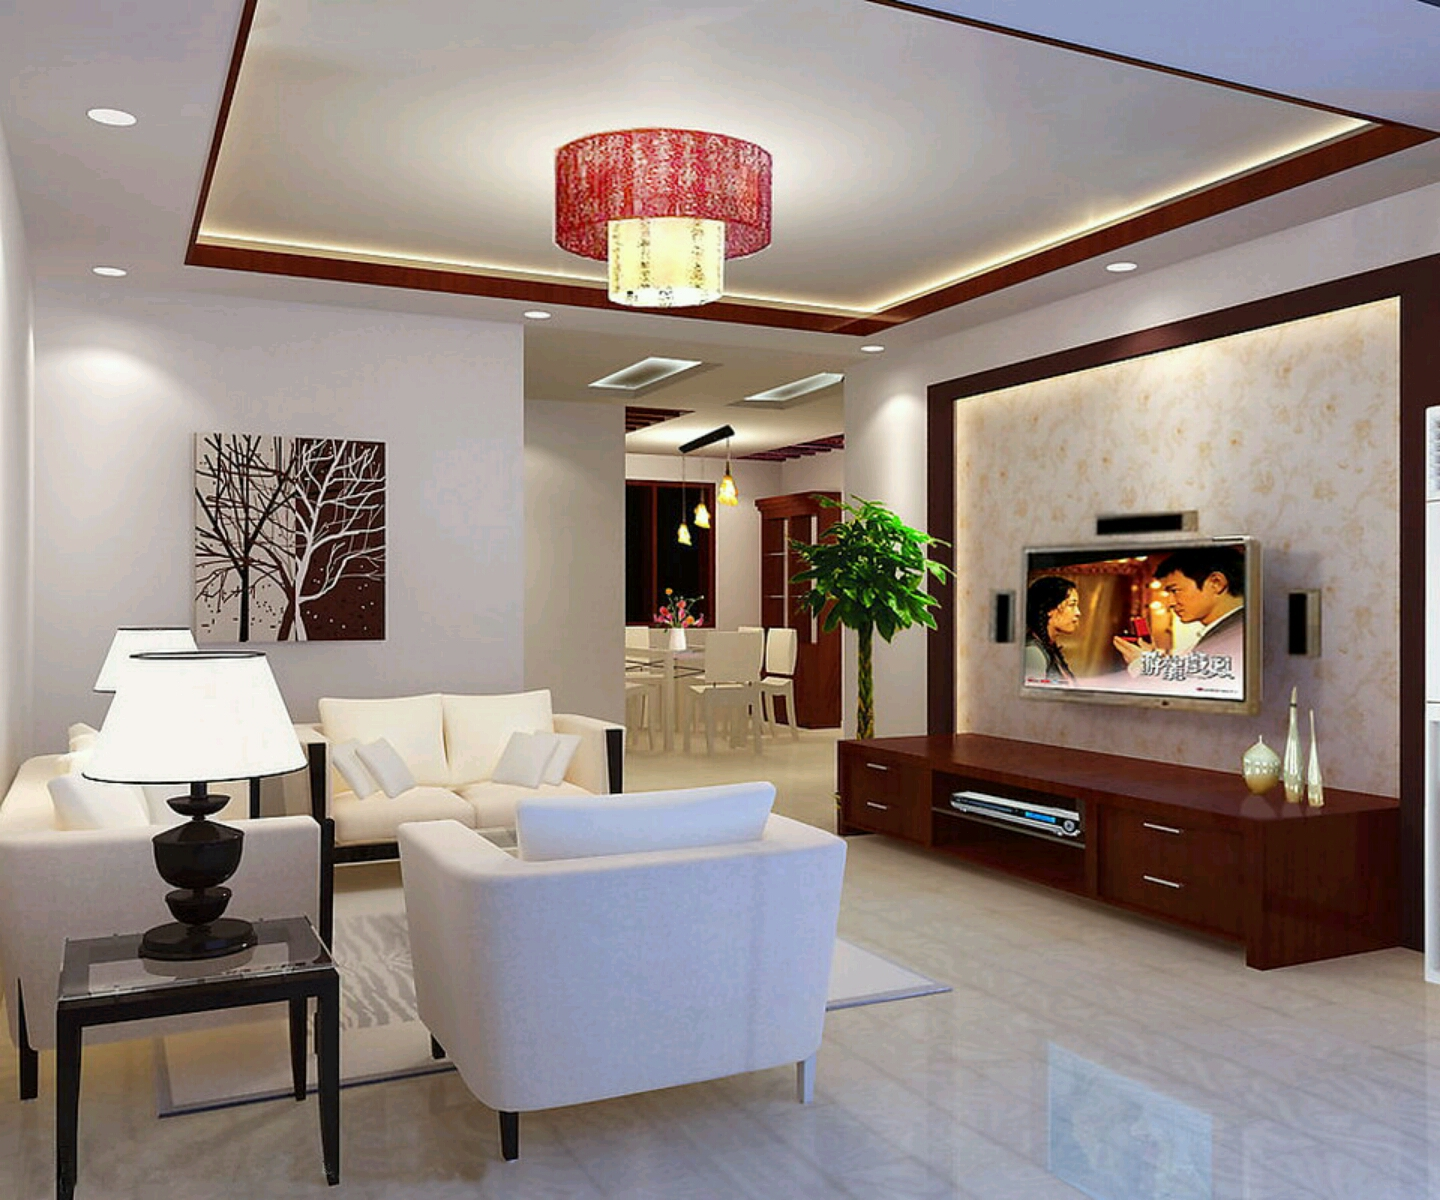 New home designs latest modern interior decoration for Home decoration house design pictures